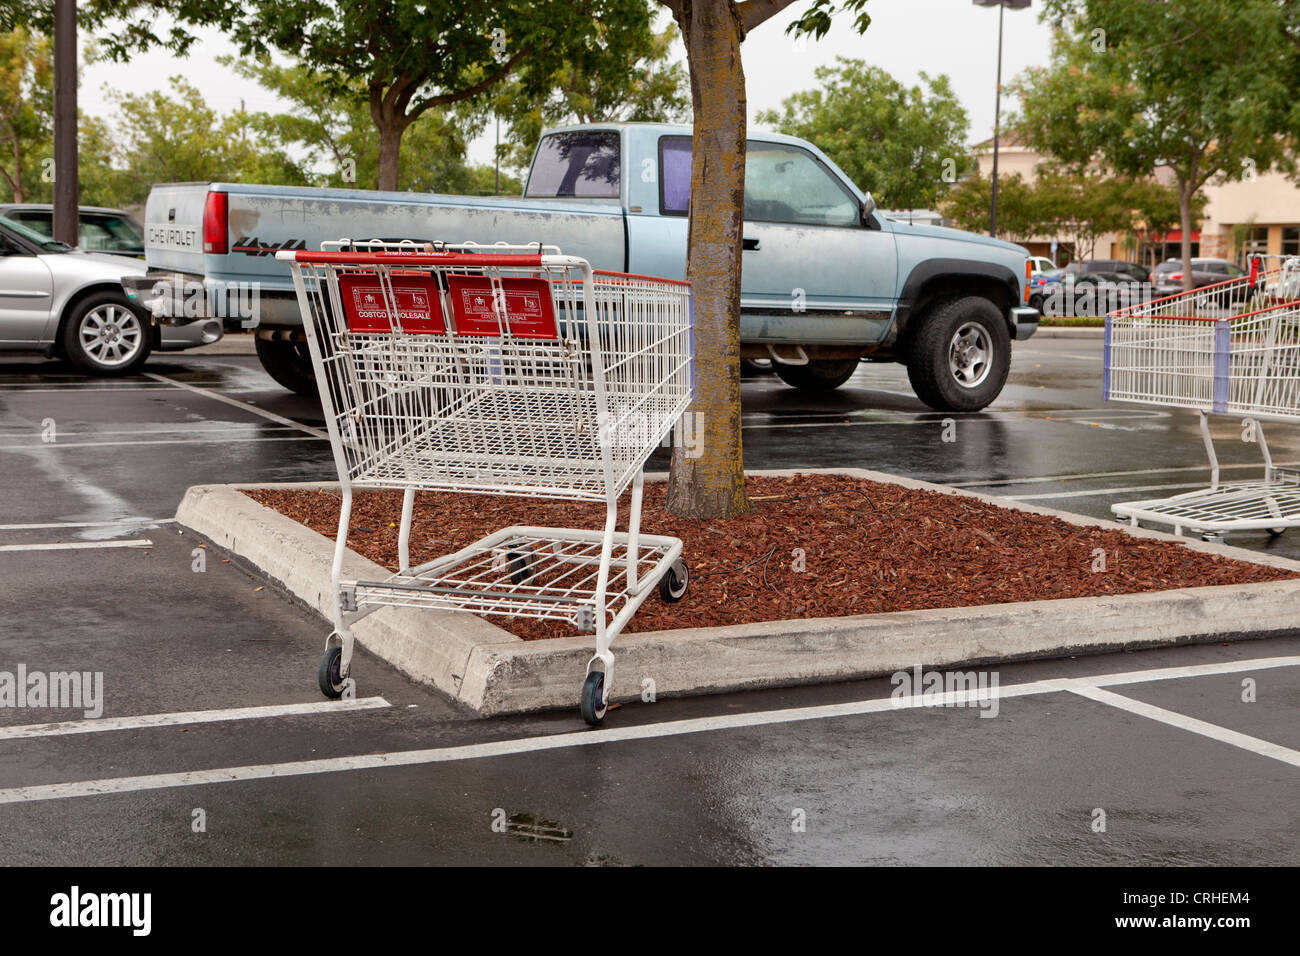 Shopping carts left in the parking lot - Stock Image